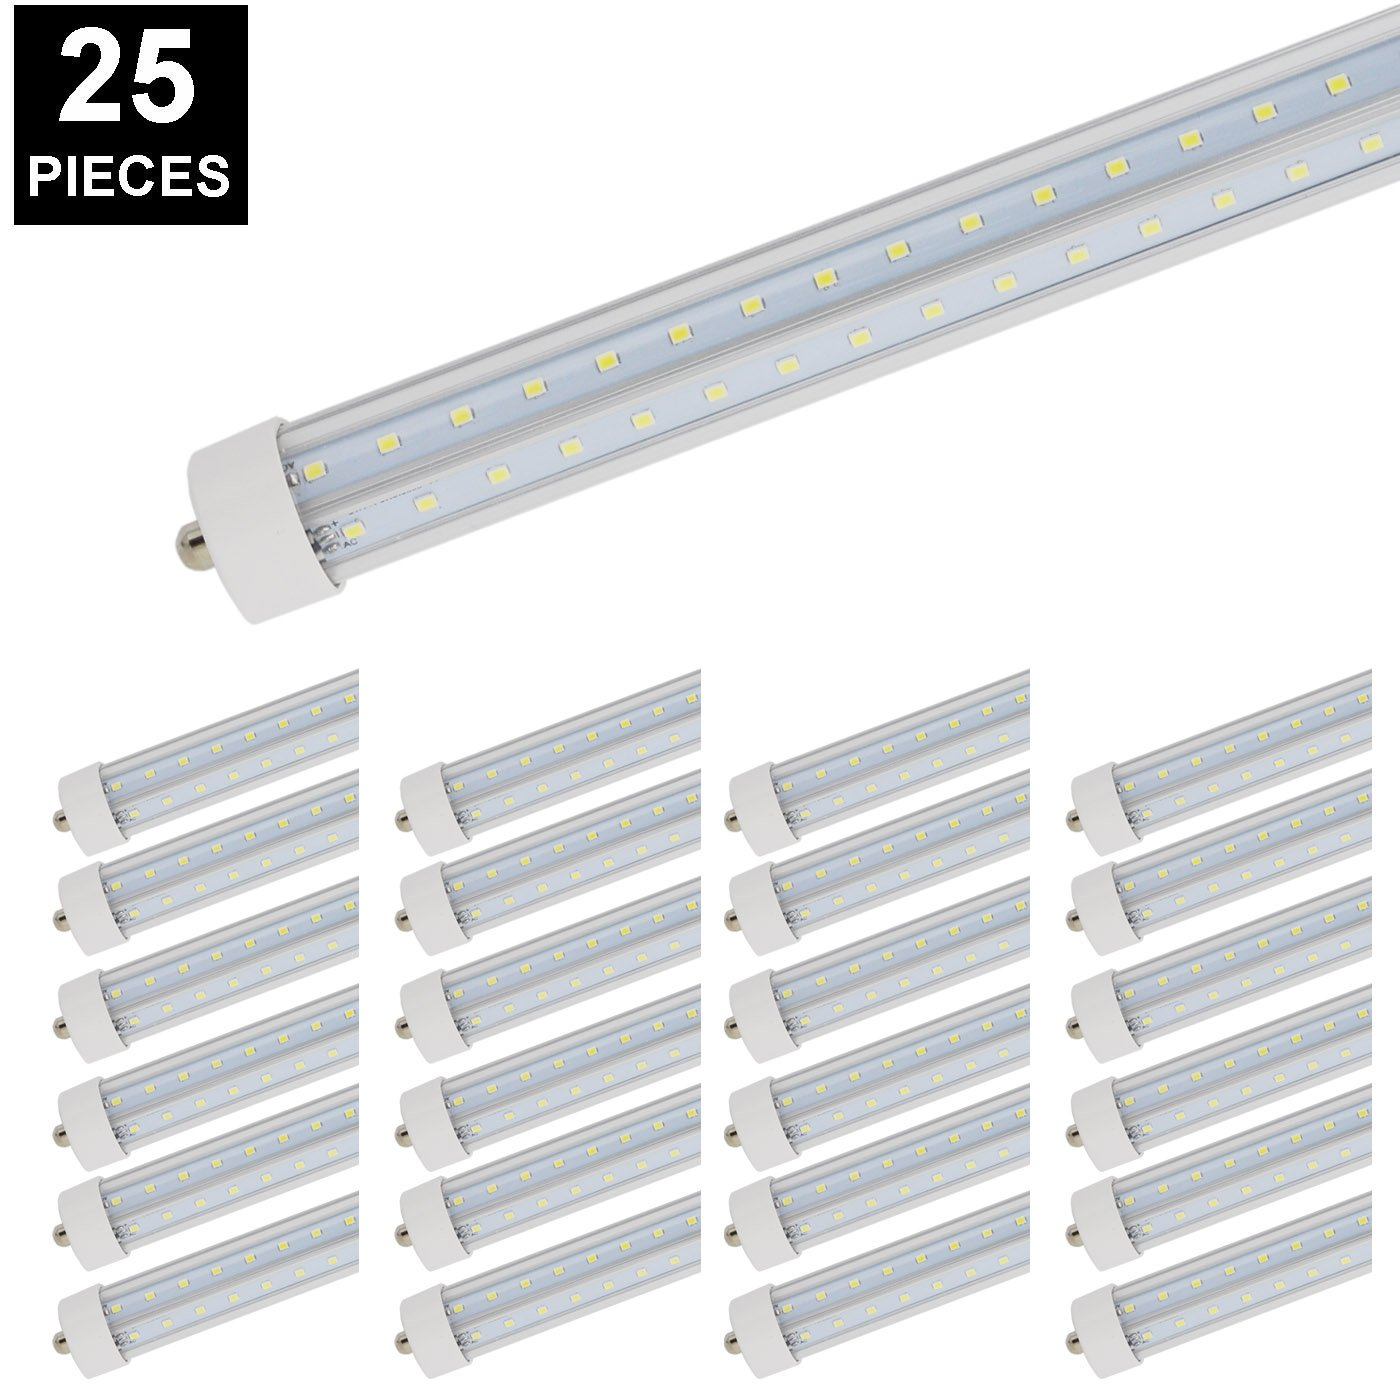 CNSUNWAY 8ft 72W T8 LED Tube, FA8 Single Pin 96'' V-shaped Light Bulb 6000K Cool White Lamps With Clean Cover (25 Pack)